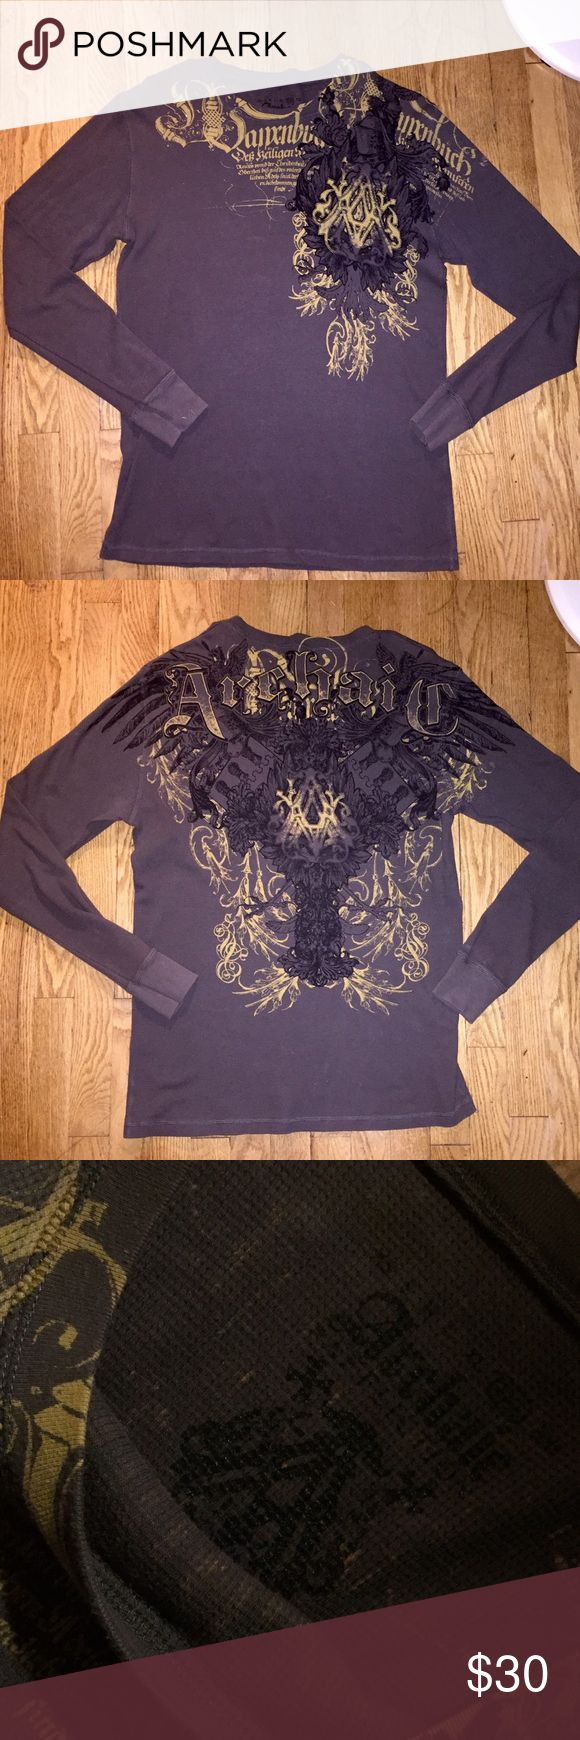 Men's Affliction L/S Shirt Mens Affliction (Archaic) Long Sleeved Designer Shirt from the Buckle store. In size Large. In excellent condition 😍 Affliction Shirts Tees - Long Sleeve